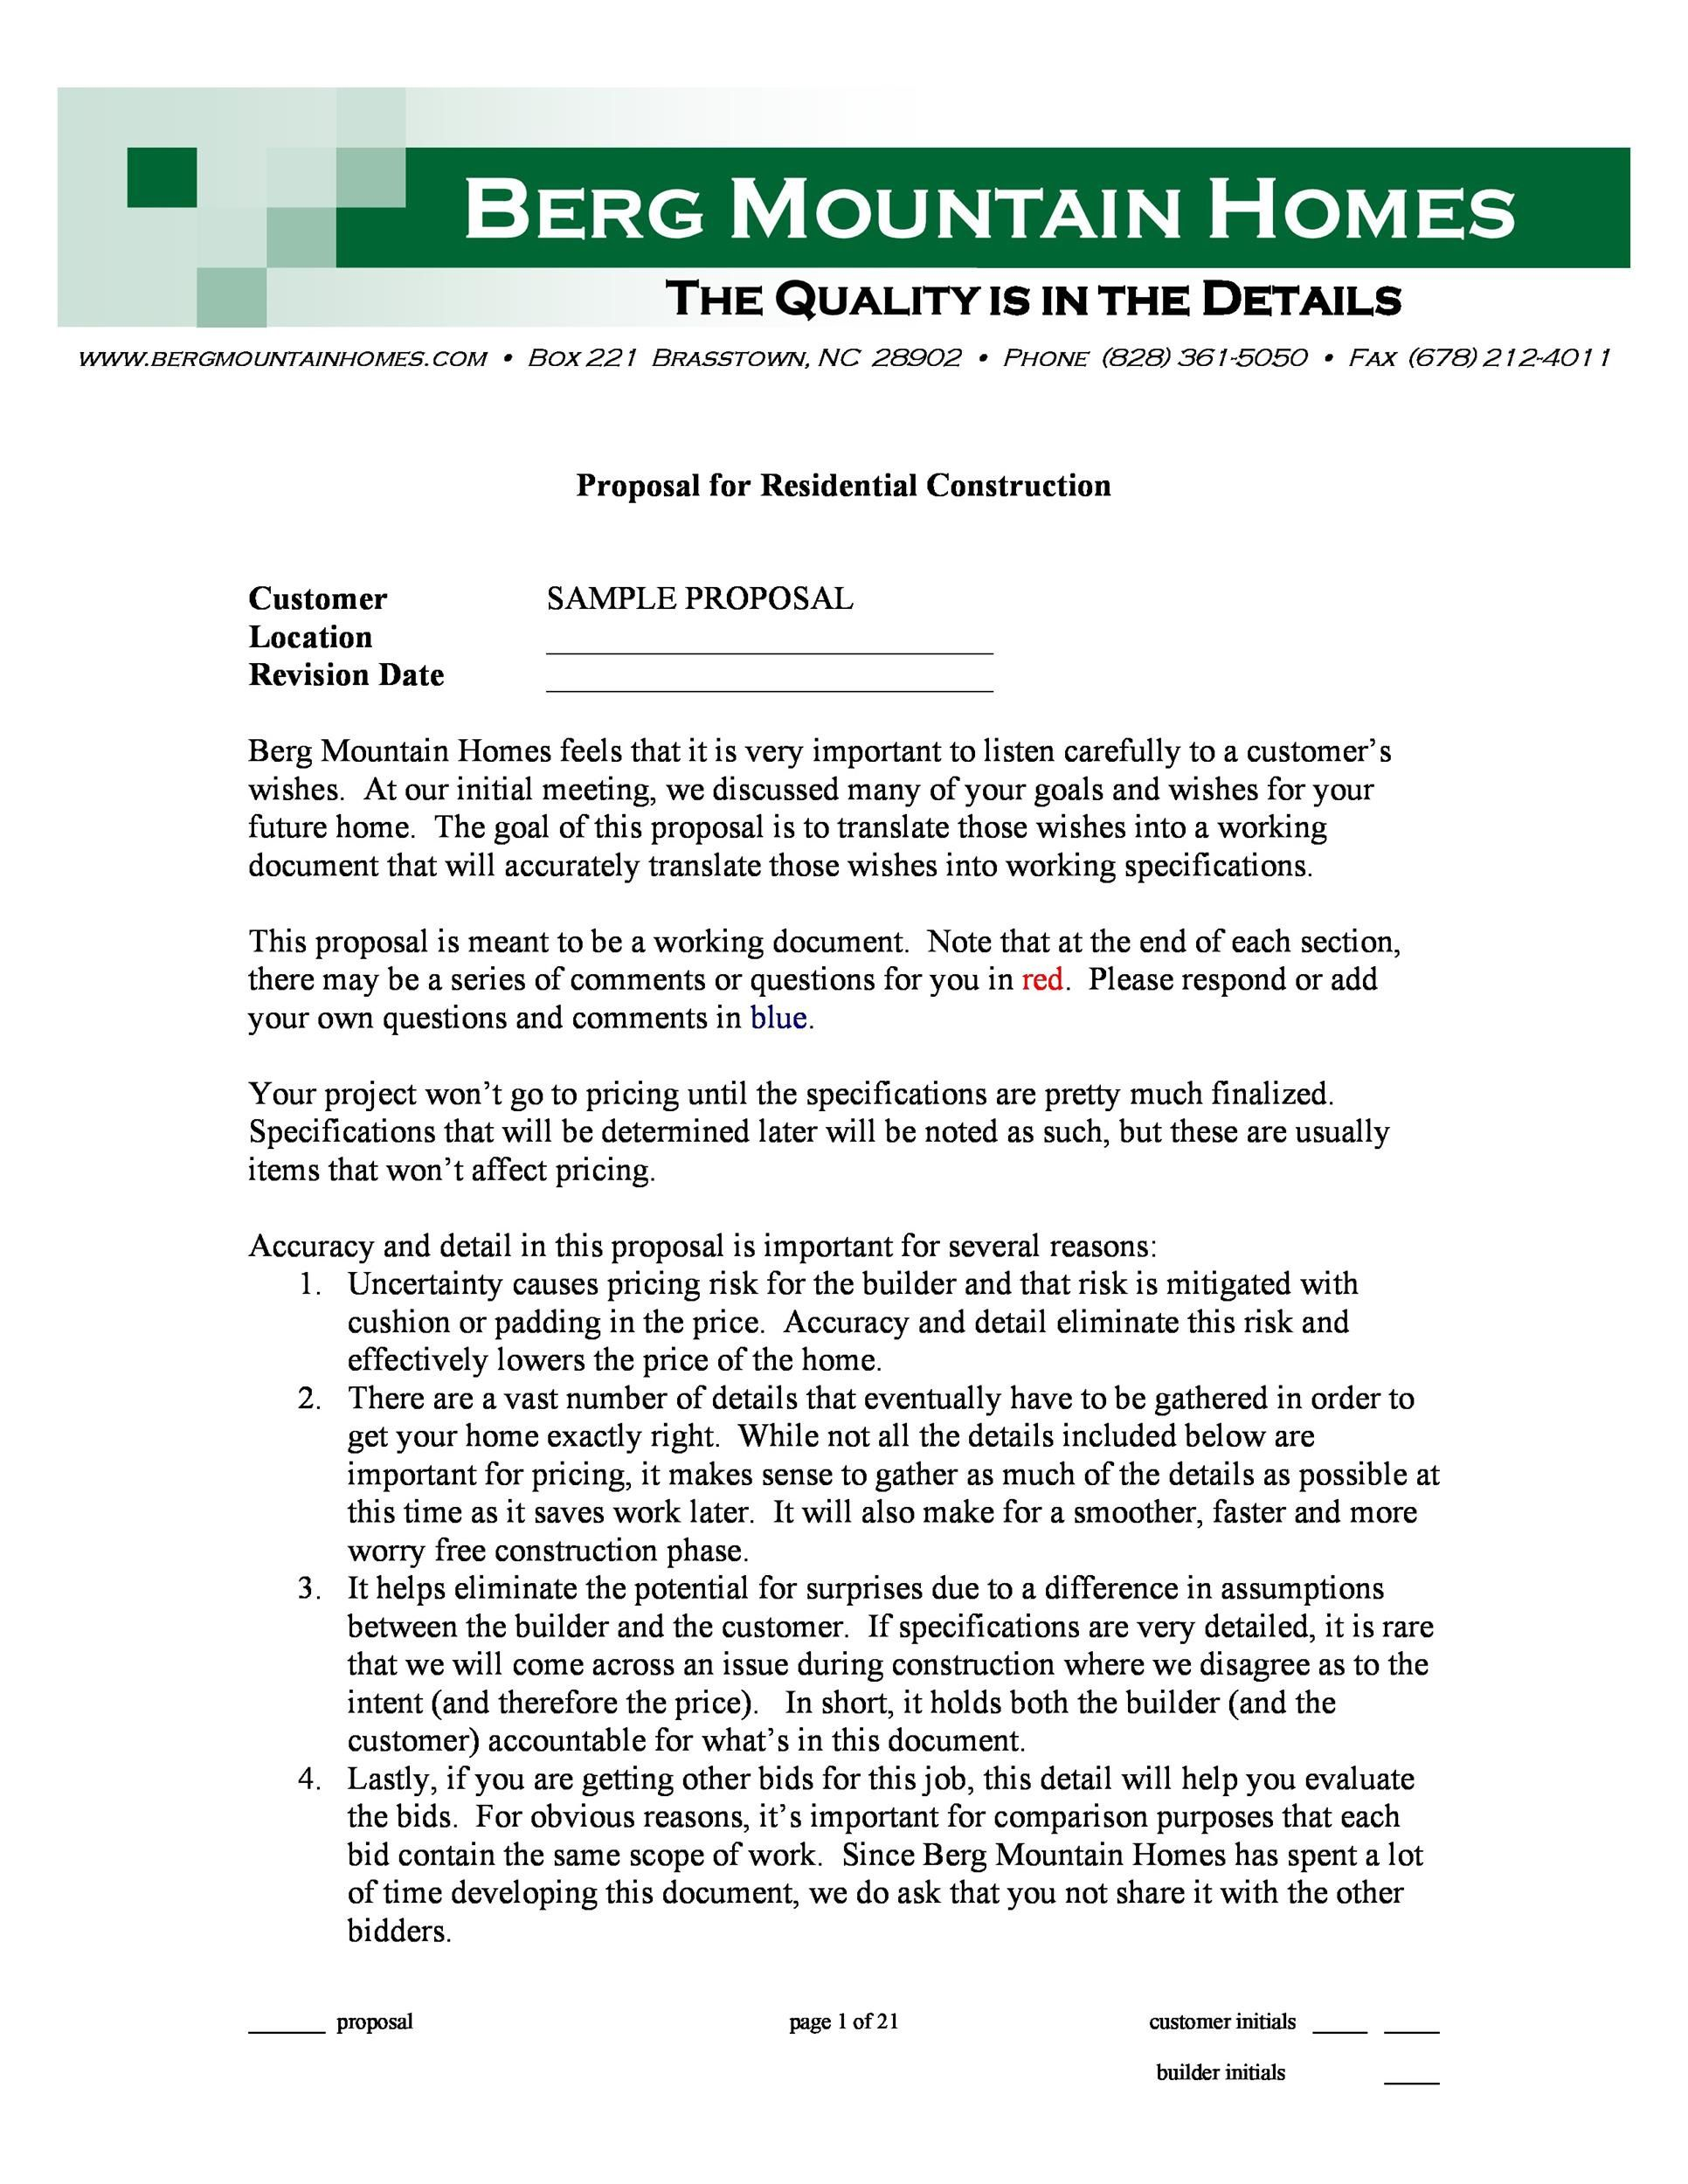 005 Exceptional Contractor Proposal Template Pdf Highest Clarity  Construction Bid Upwork Sample FreeFull